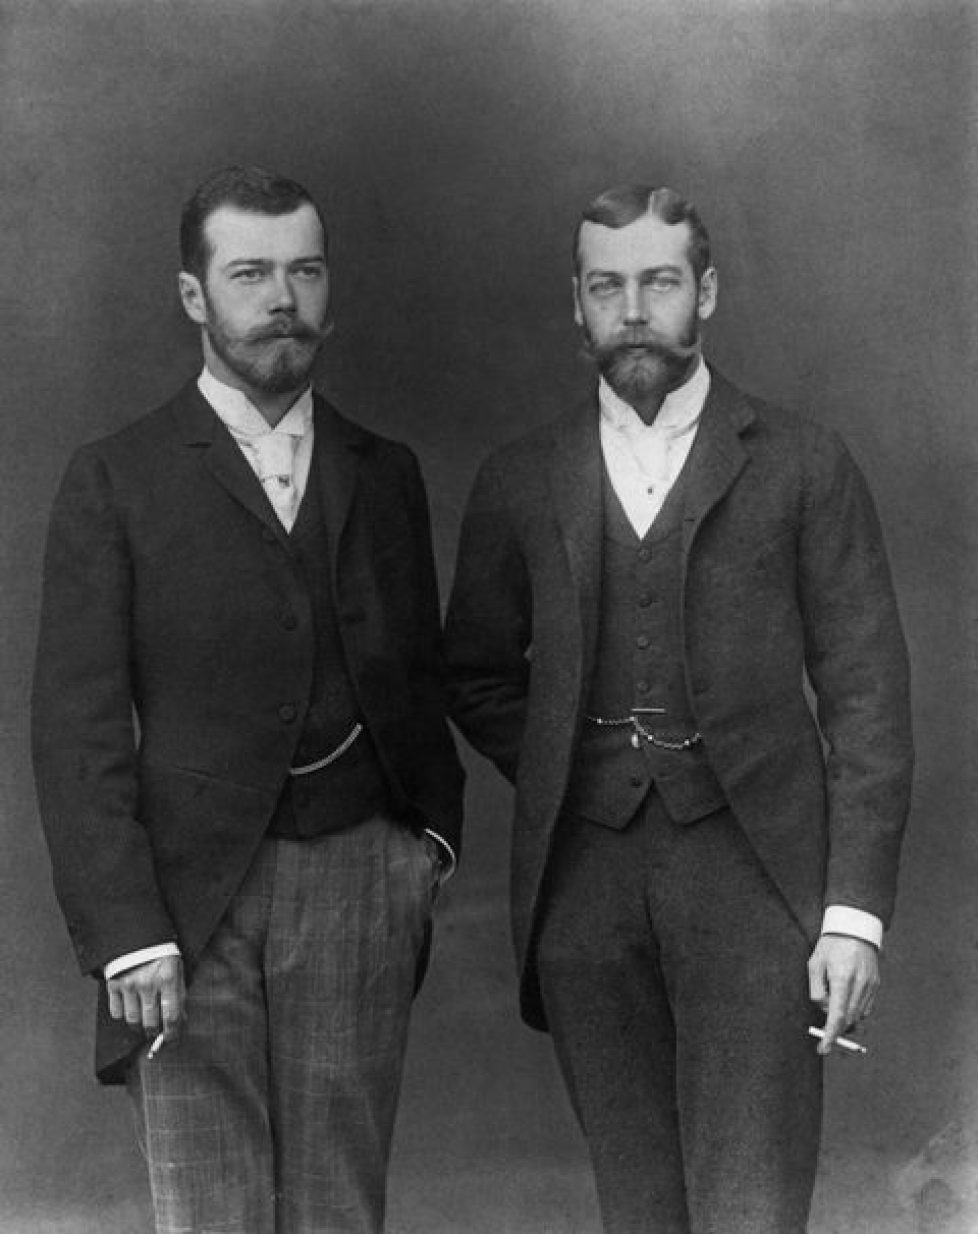 the-tsarevich-of-russia-with-his-cousin-prince-george-duke-news-photo-1582576037